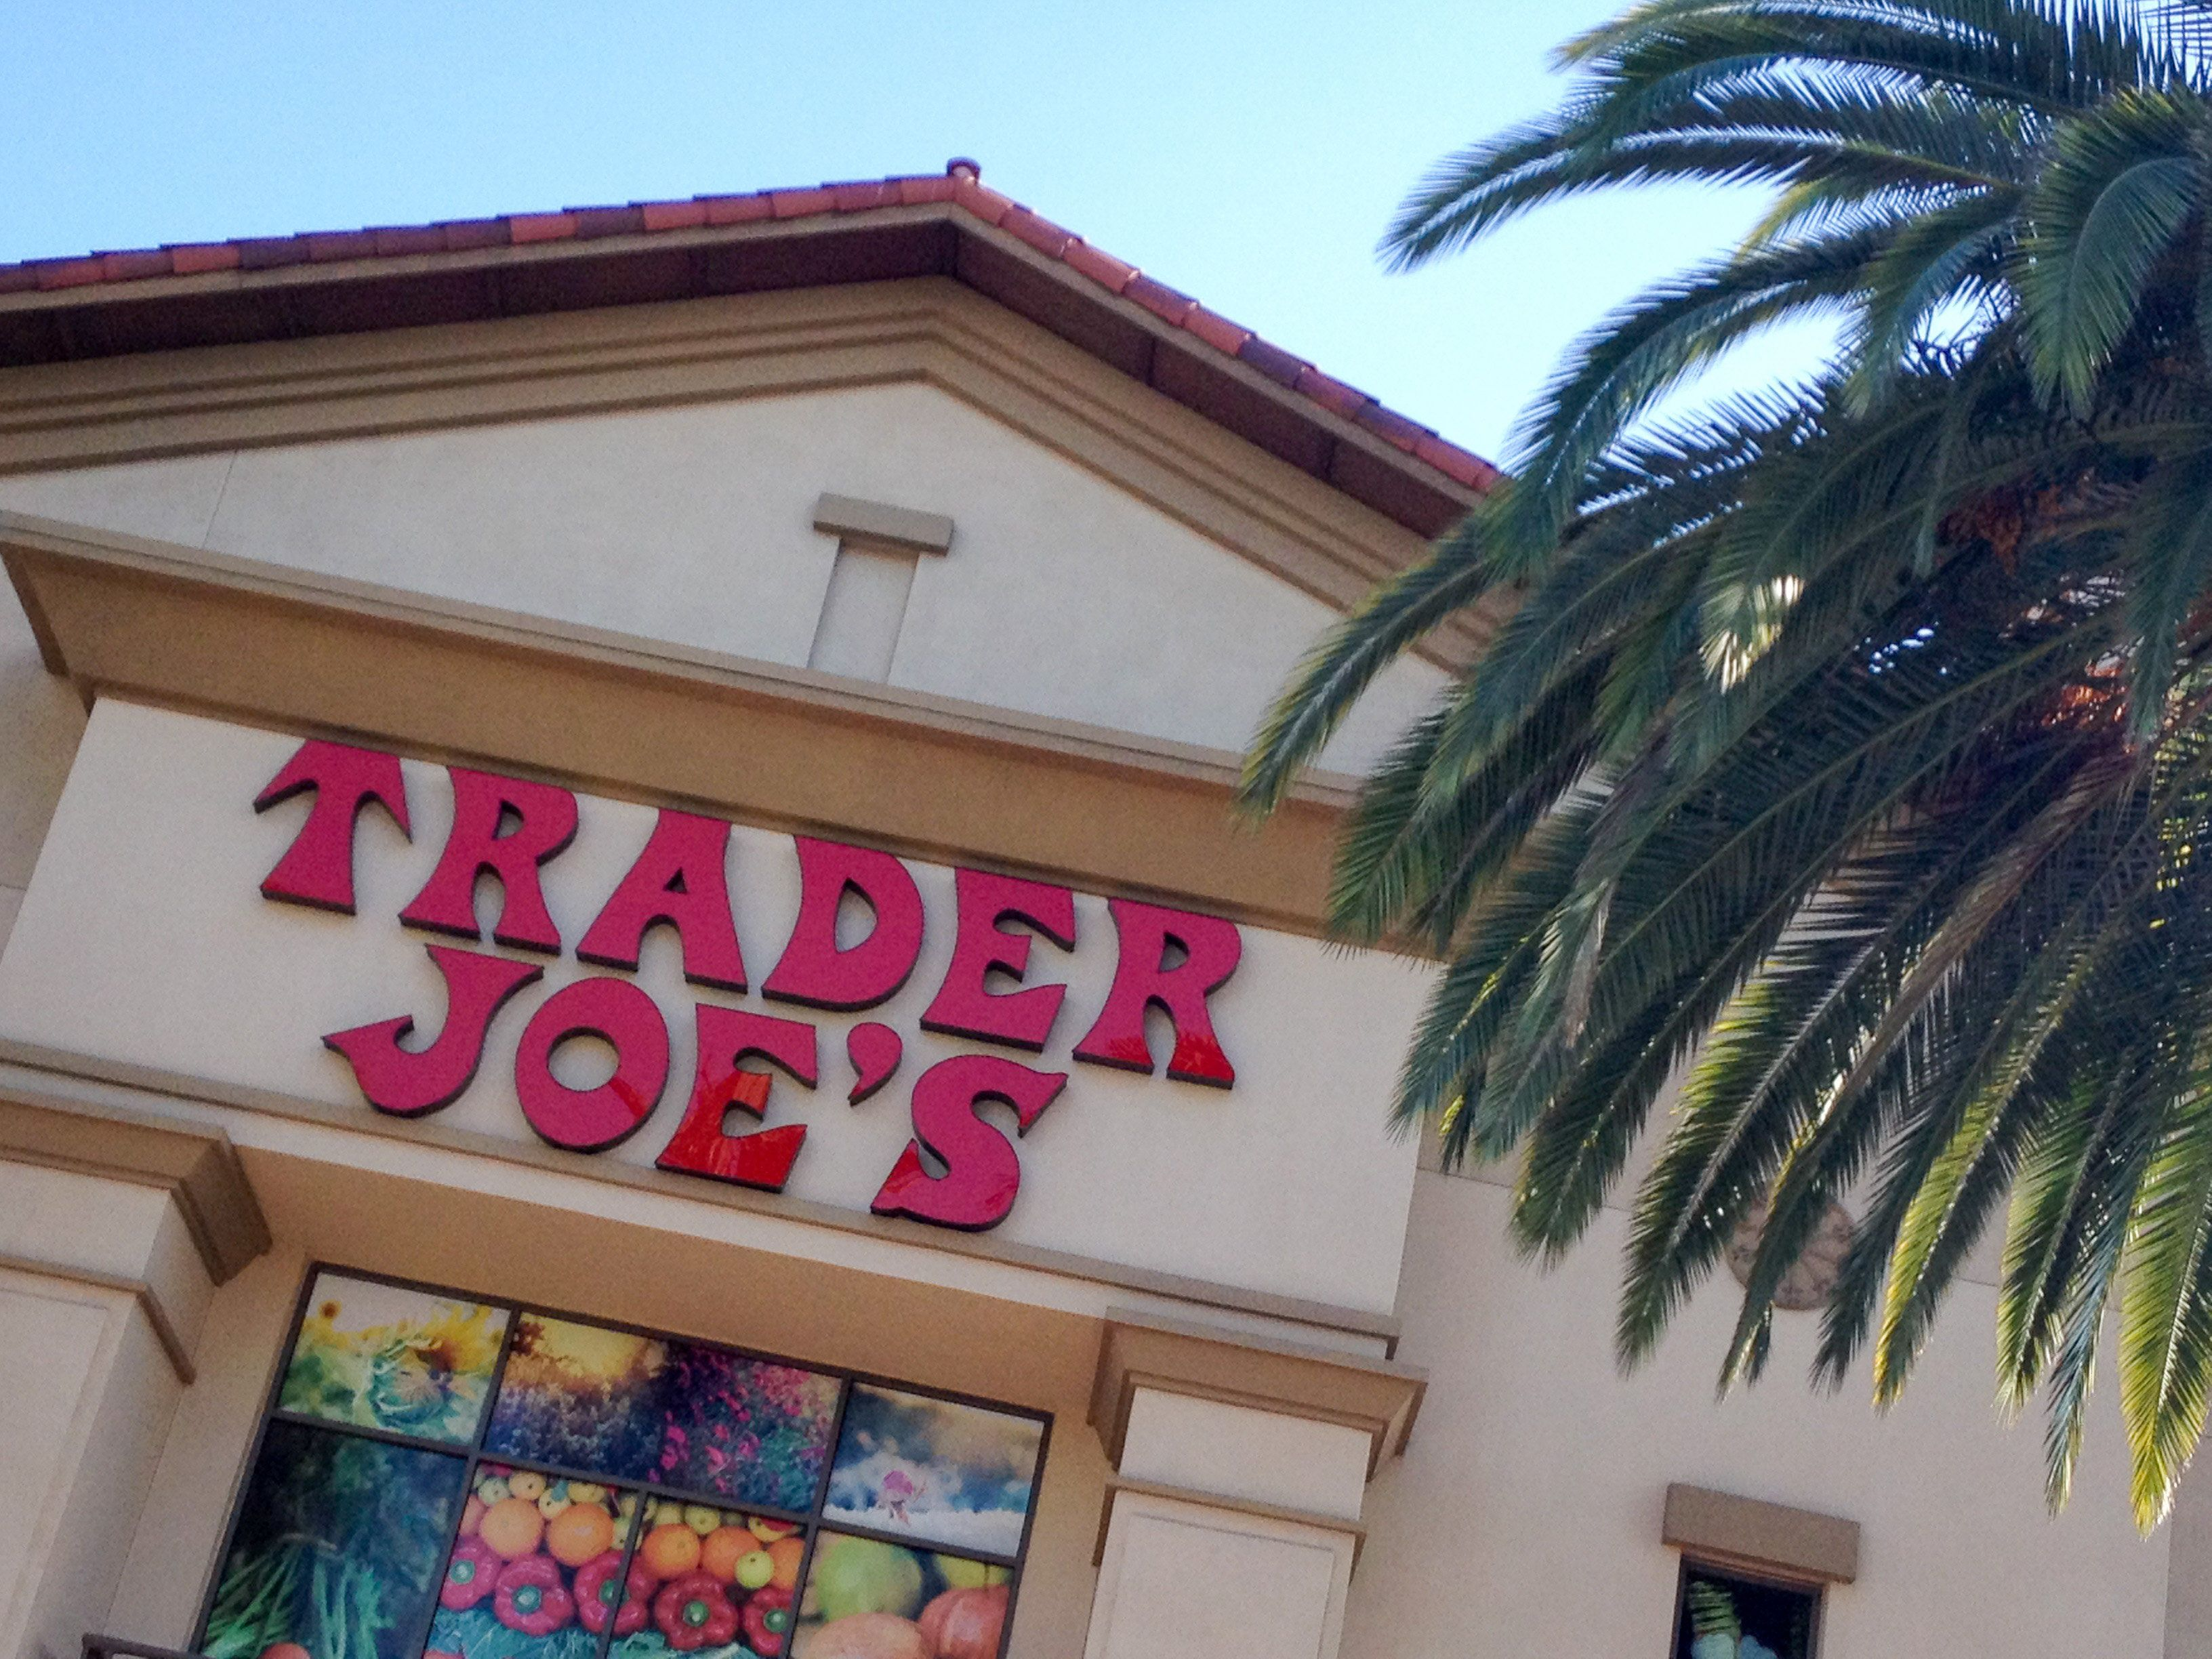 Trader Joe's Is Ripping People Off With Tuna. Says Class Action Lawsuit | HuffPost